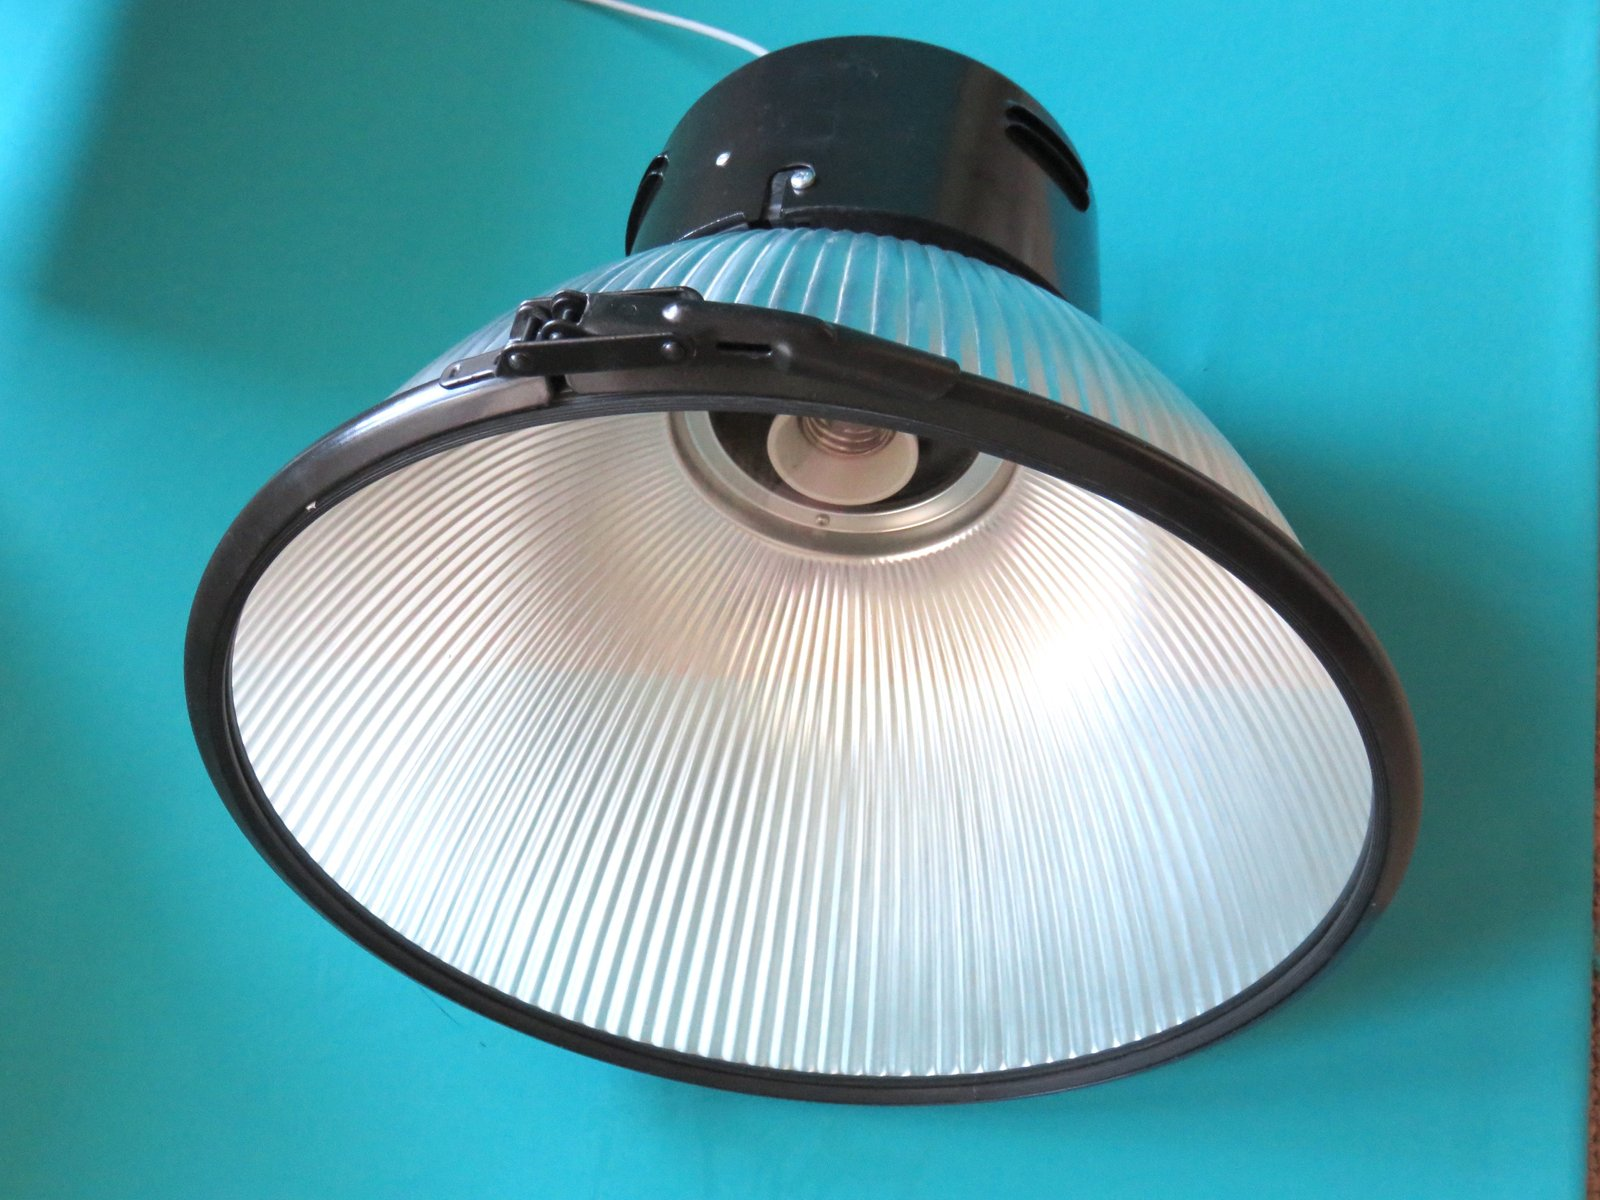 Plafoniera Incasso Led Disano : Plafoniere industriali a led disano: catalogo prodotti philips